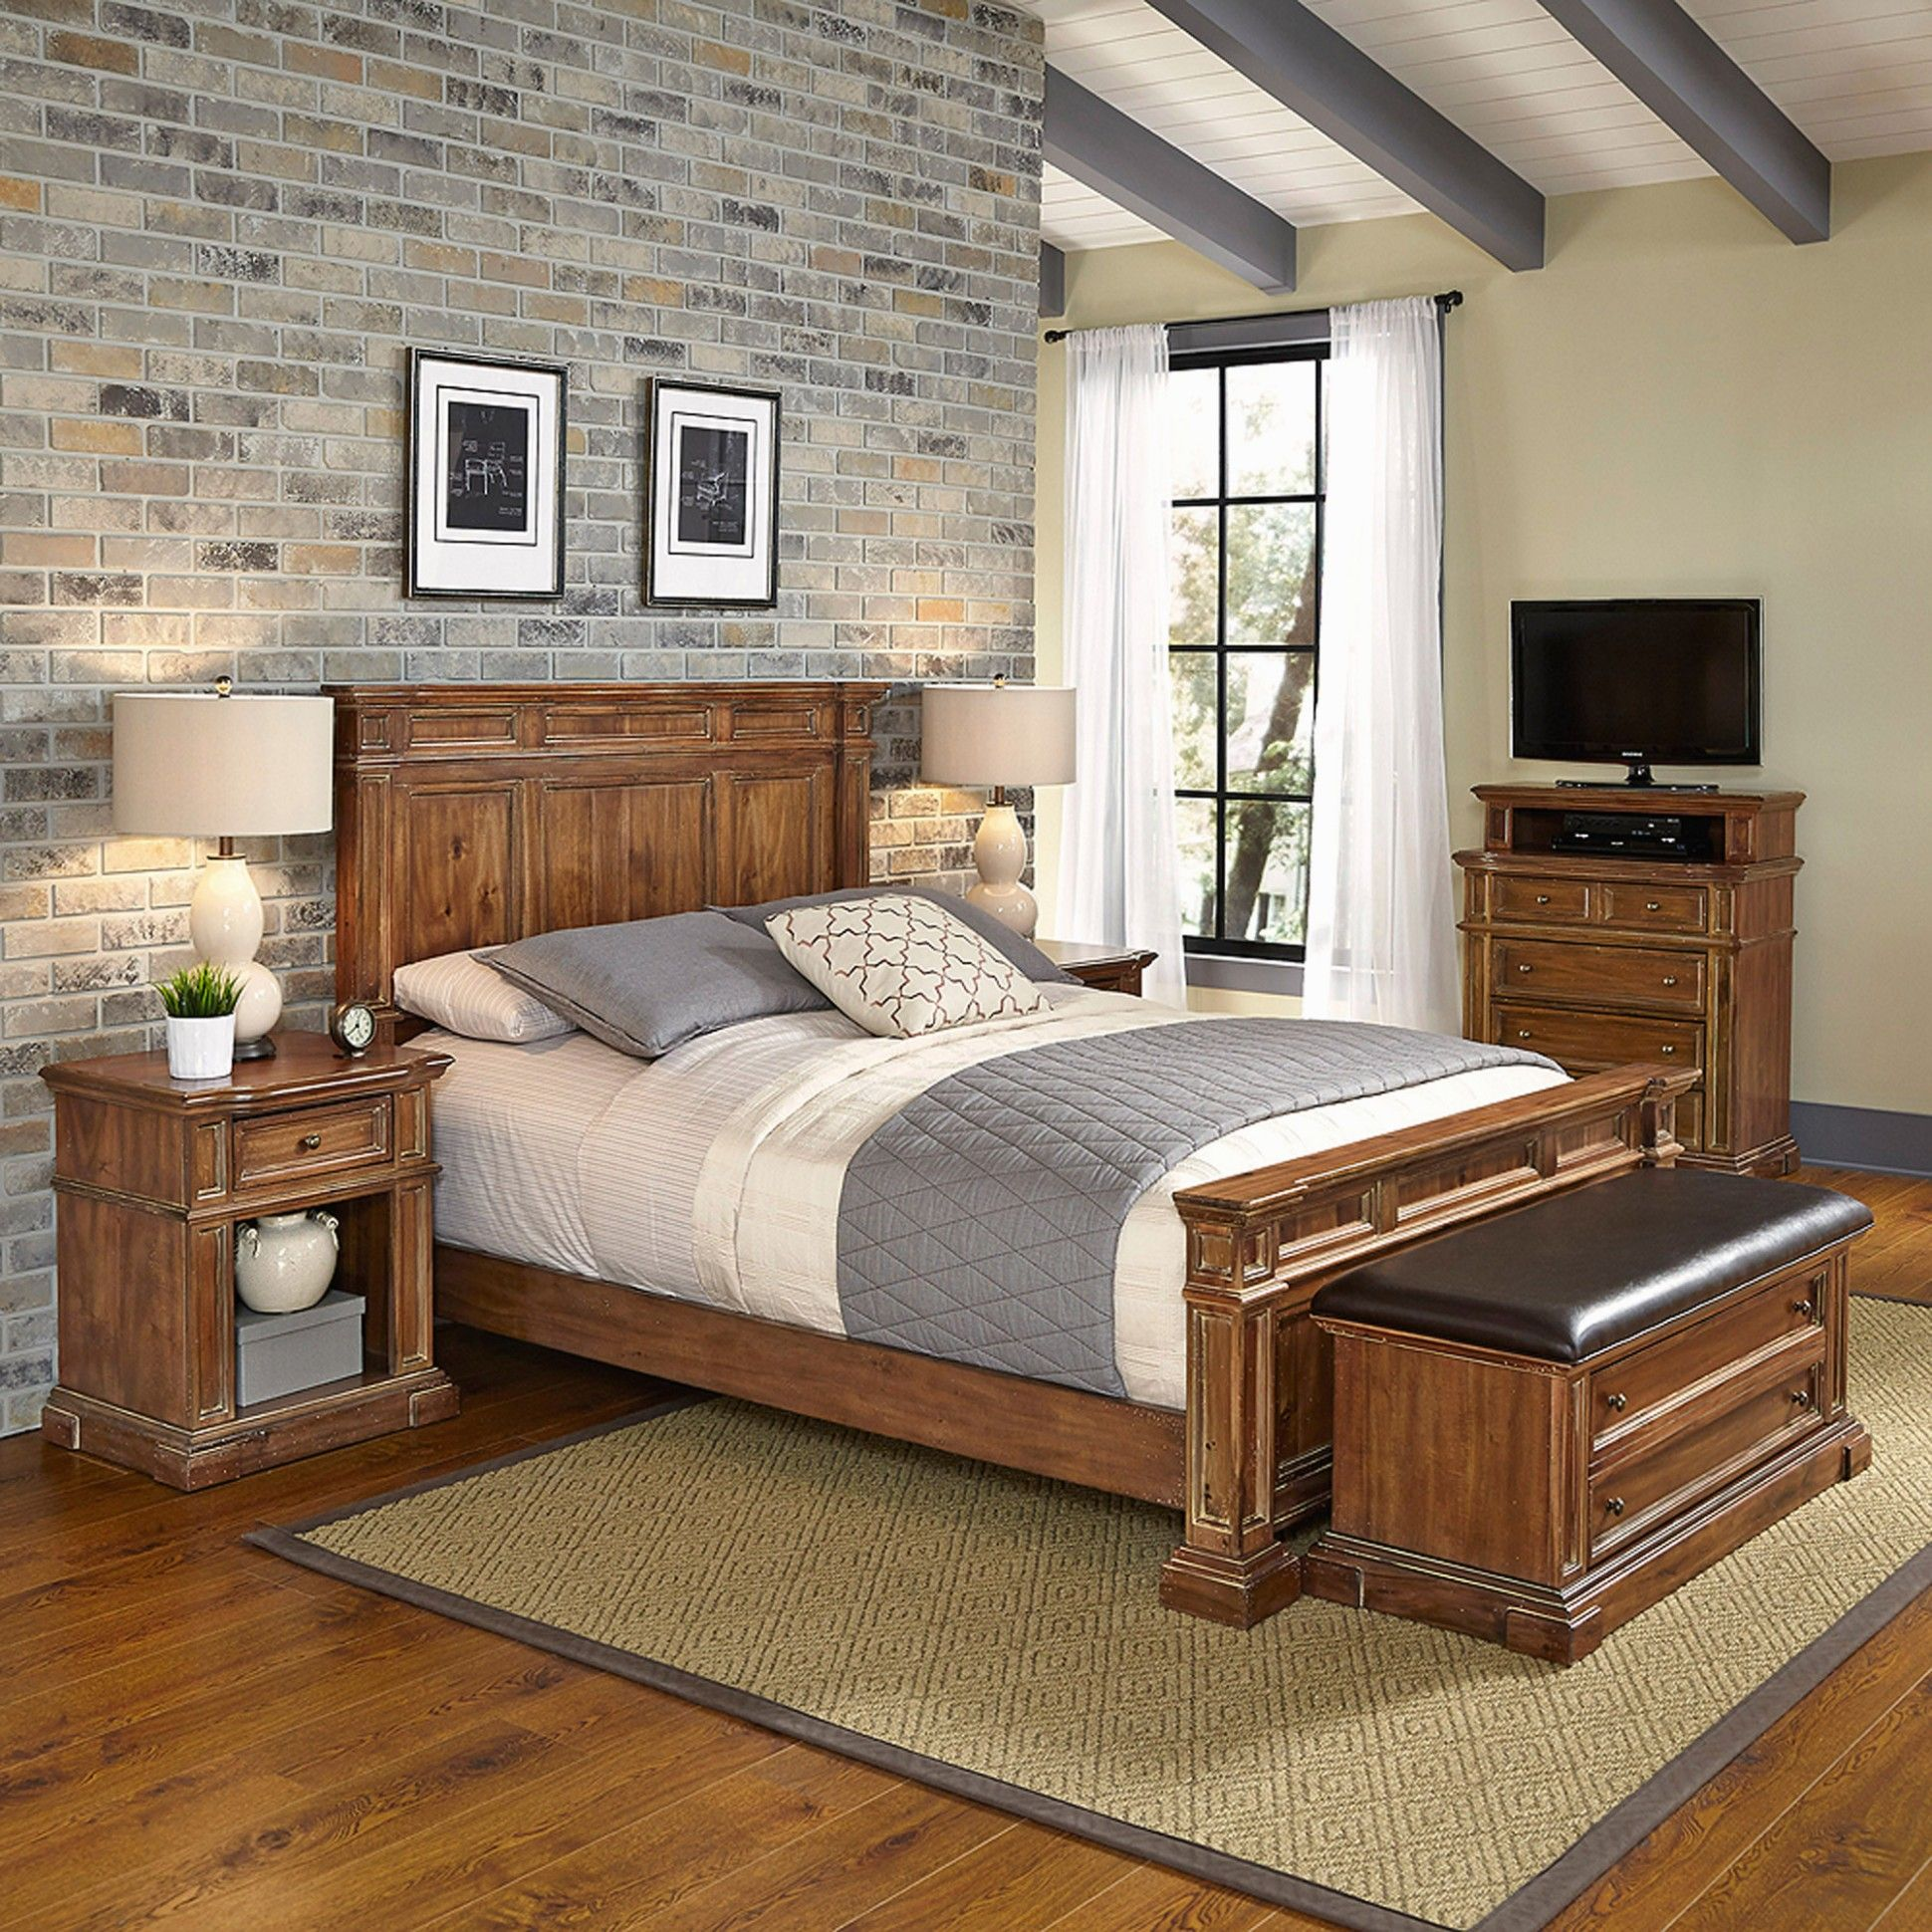 What You Should Wear To Cheap Bedroom Furniture Sets Under